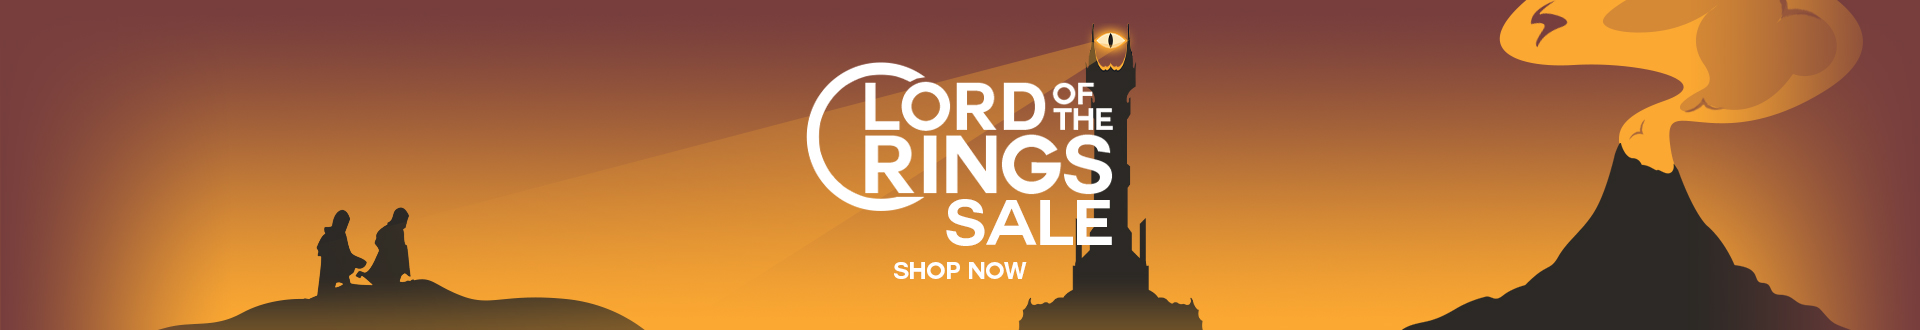 To celebrate hobbit day we're offering 5% off all Lord of the Rings products come shop around!